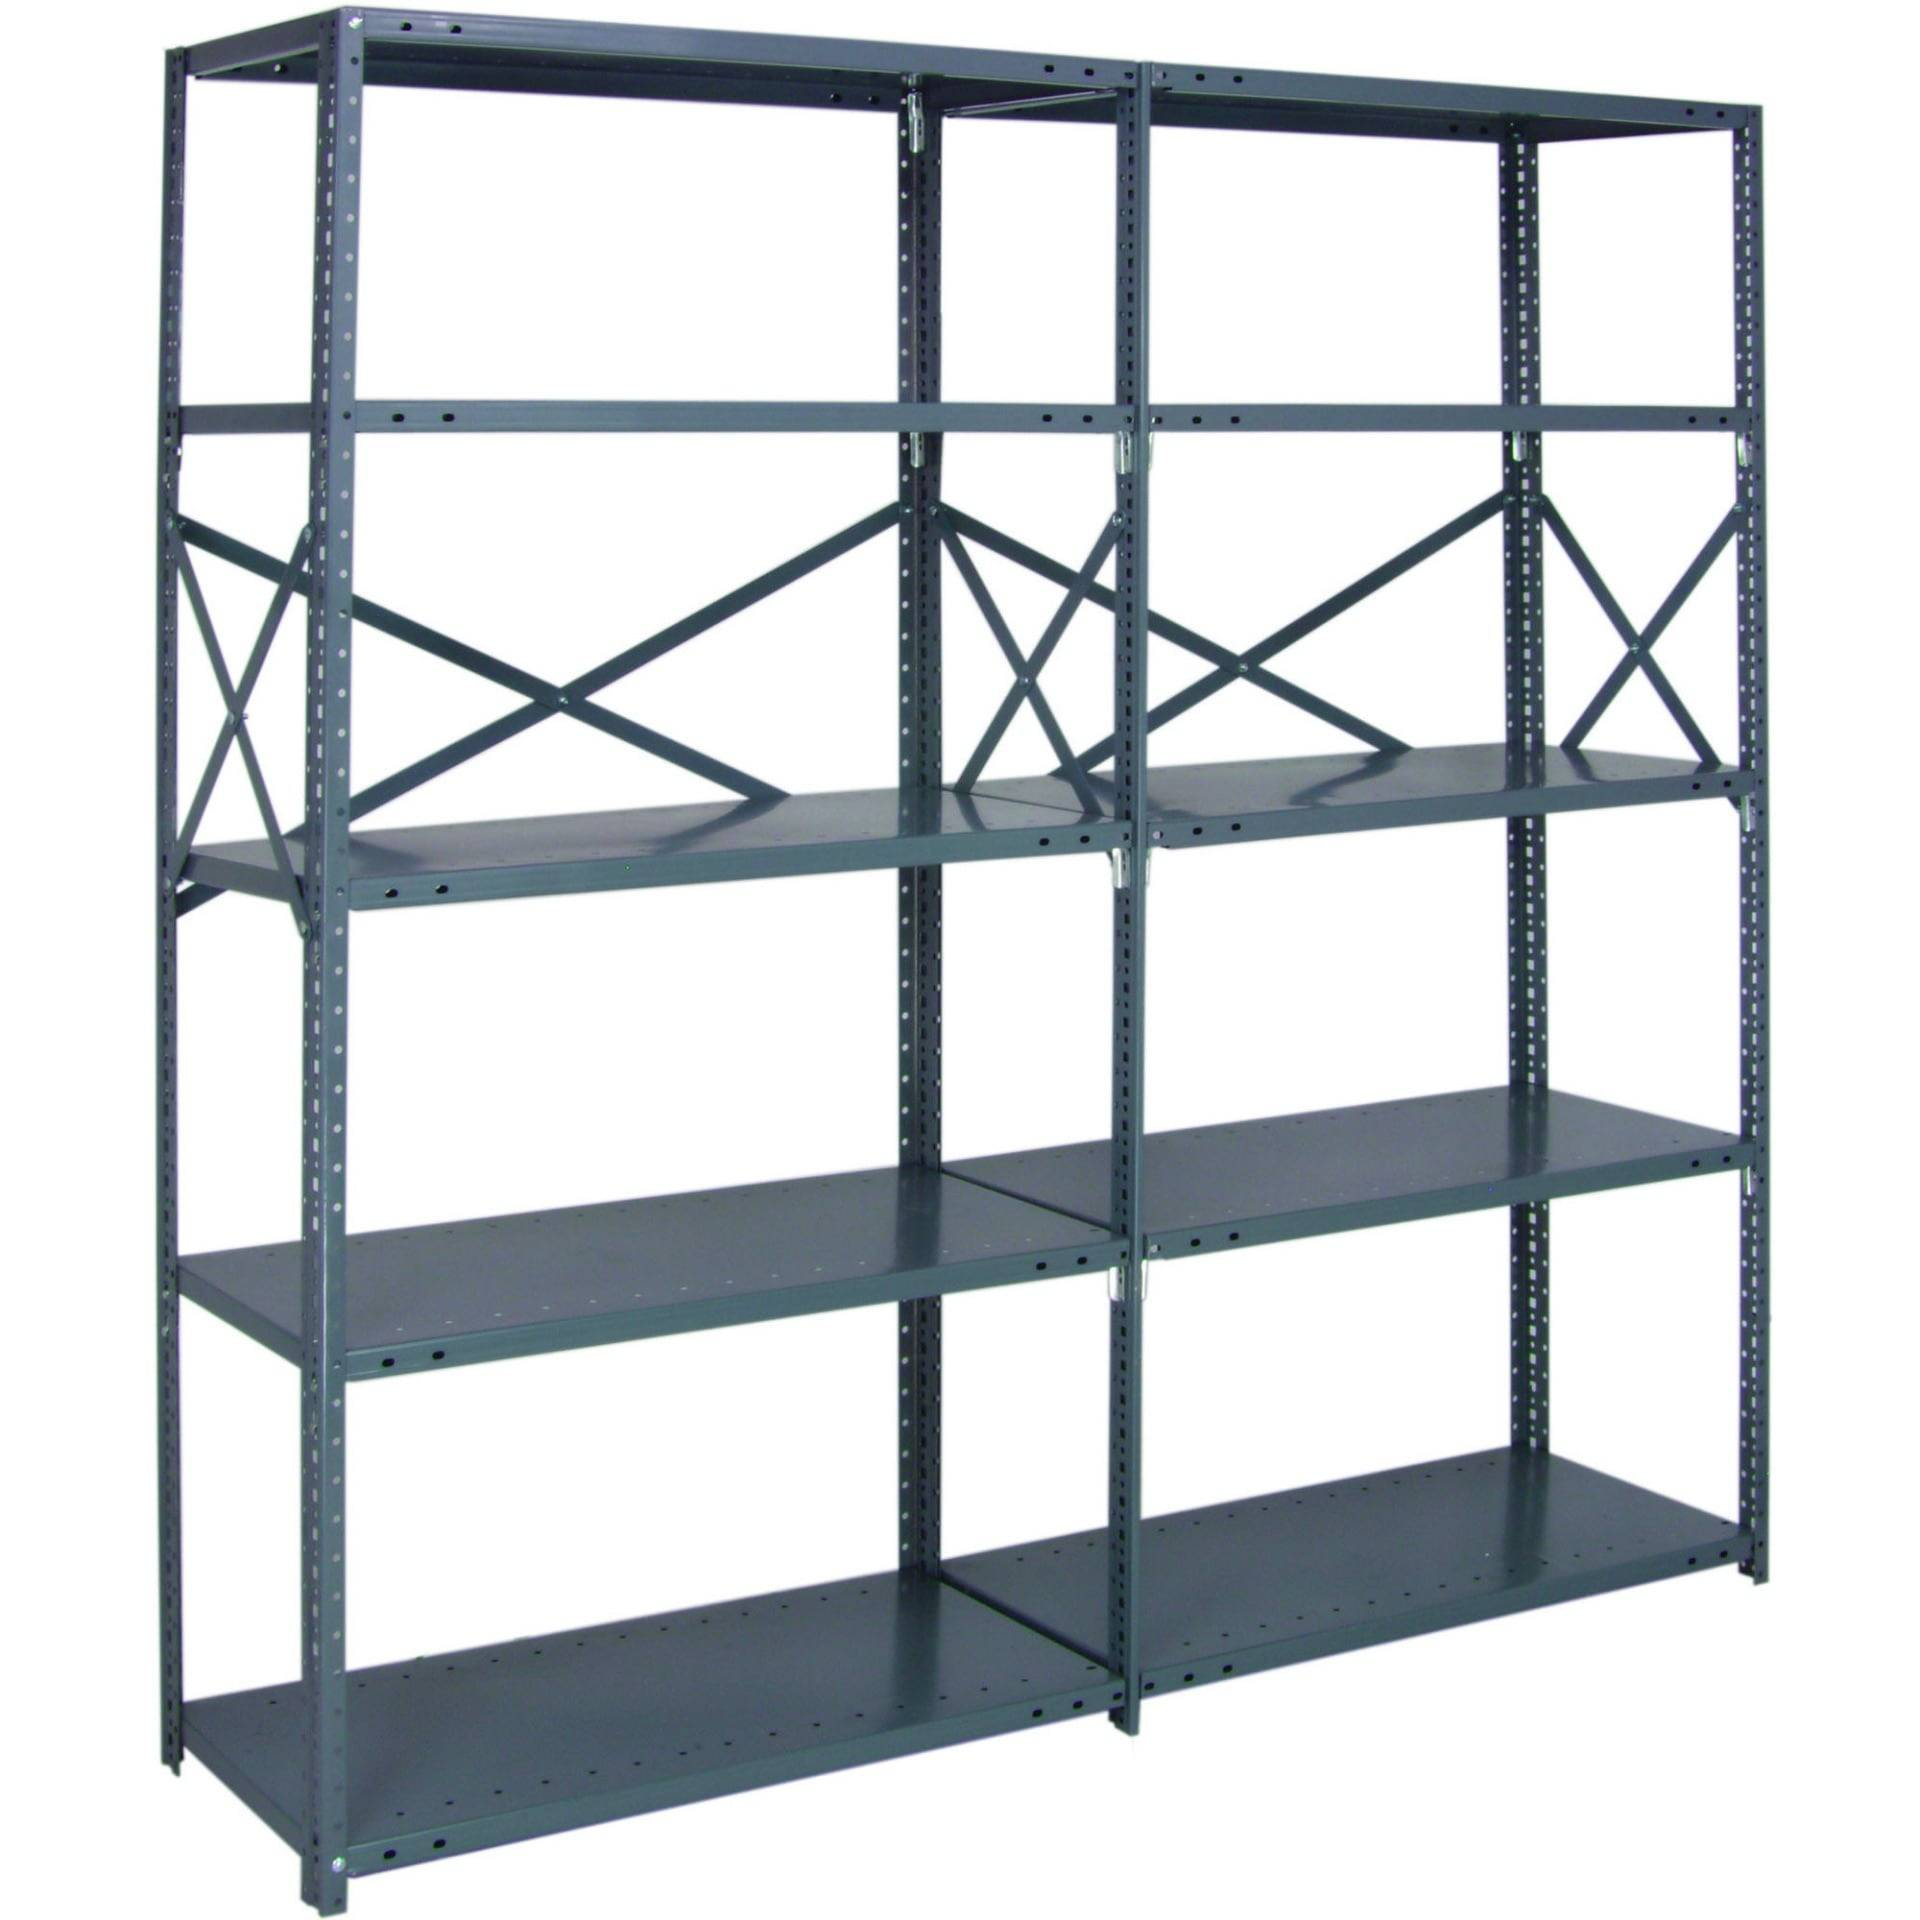 die and products warehouse rack mold racks shelf open product storage roll out